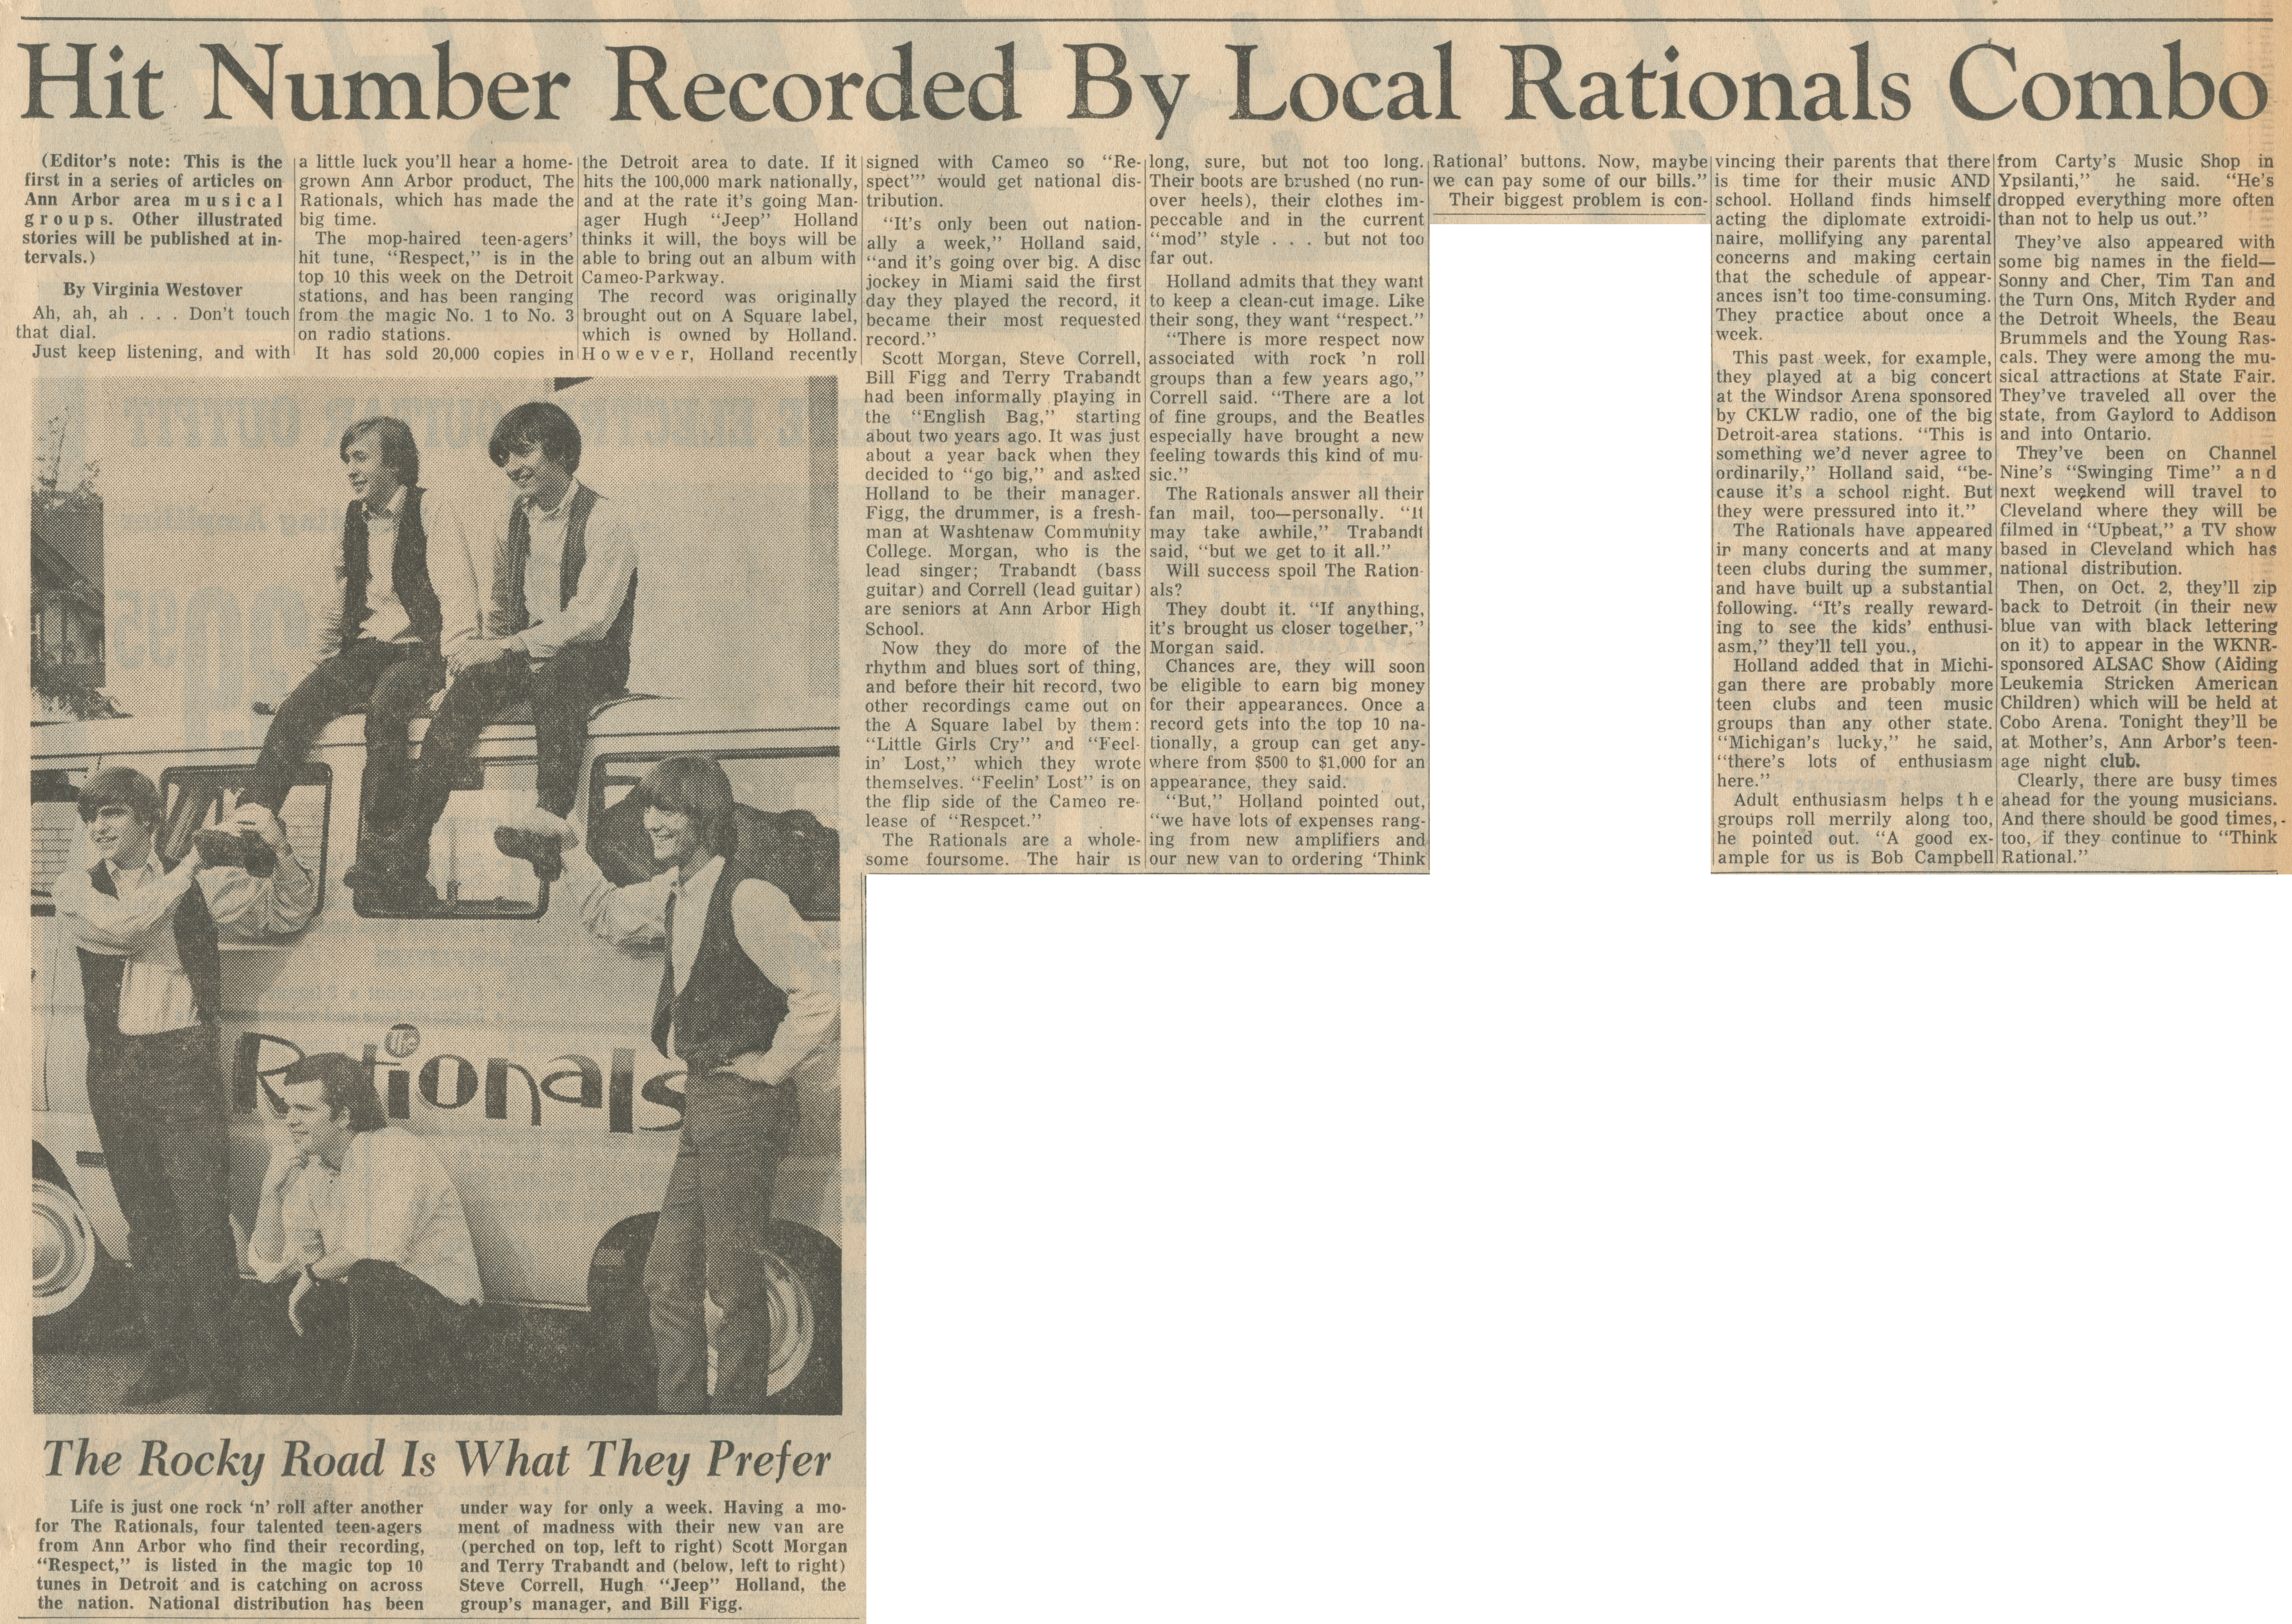 Hit Number Recorded By Local Rationals Combo image